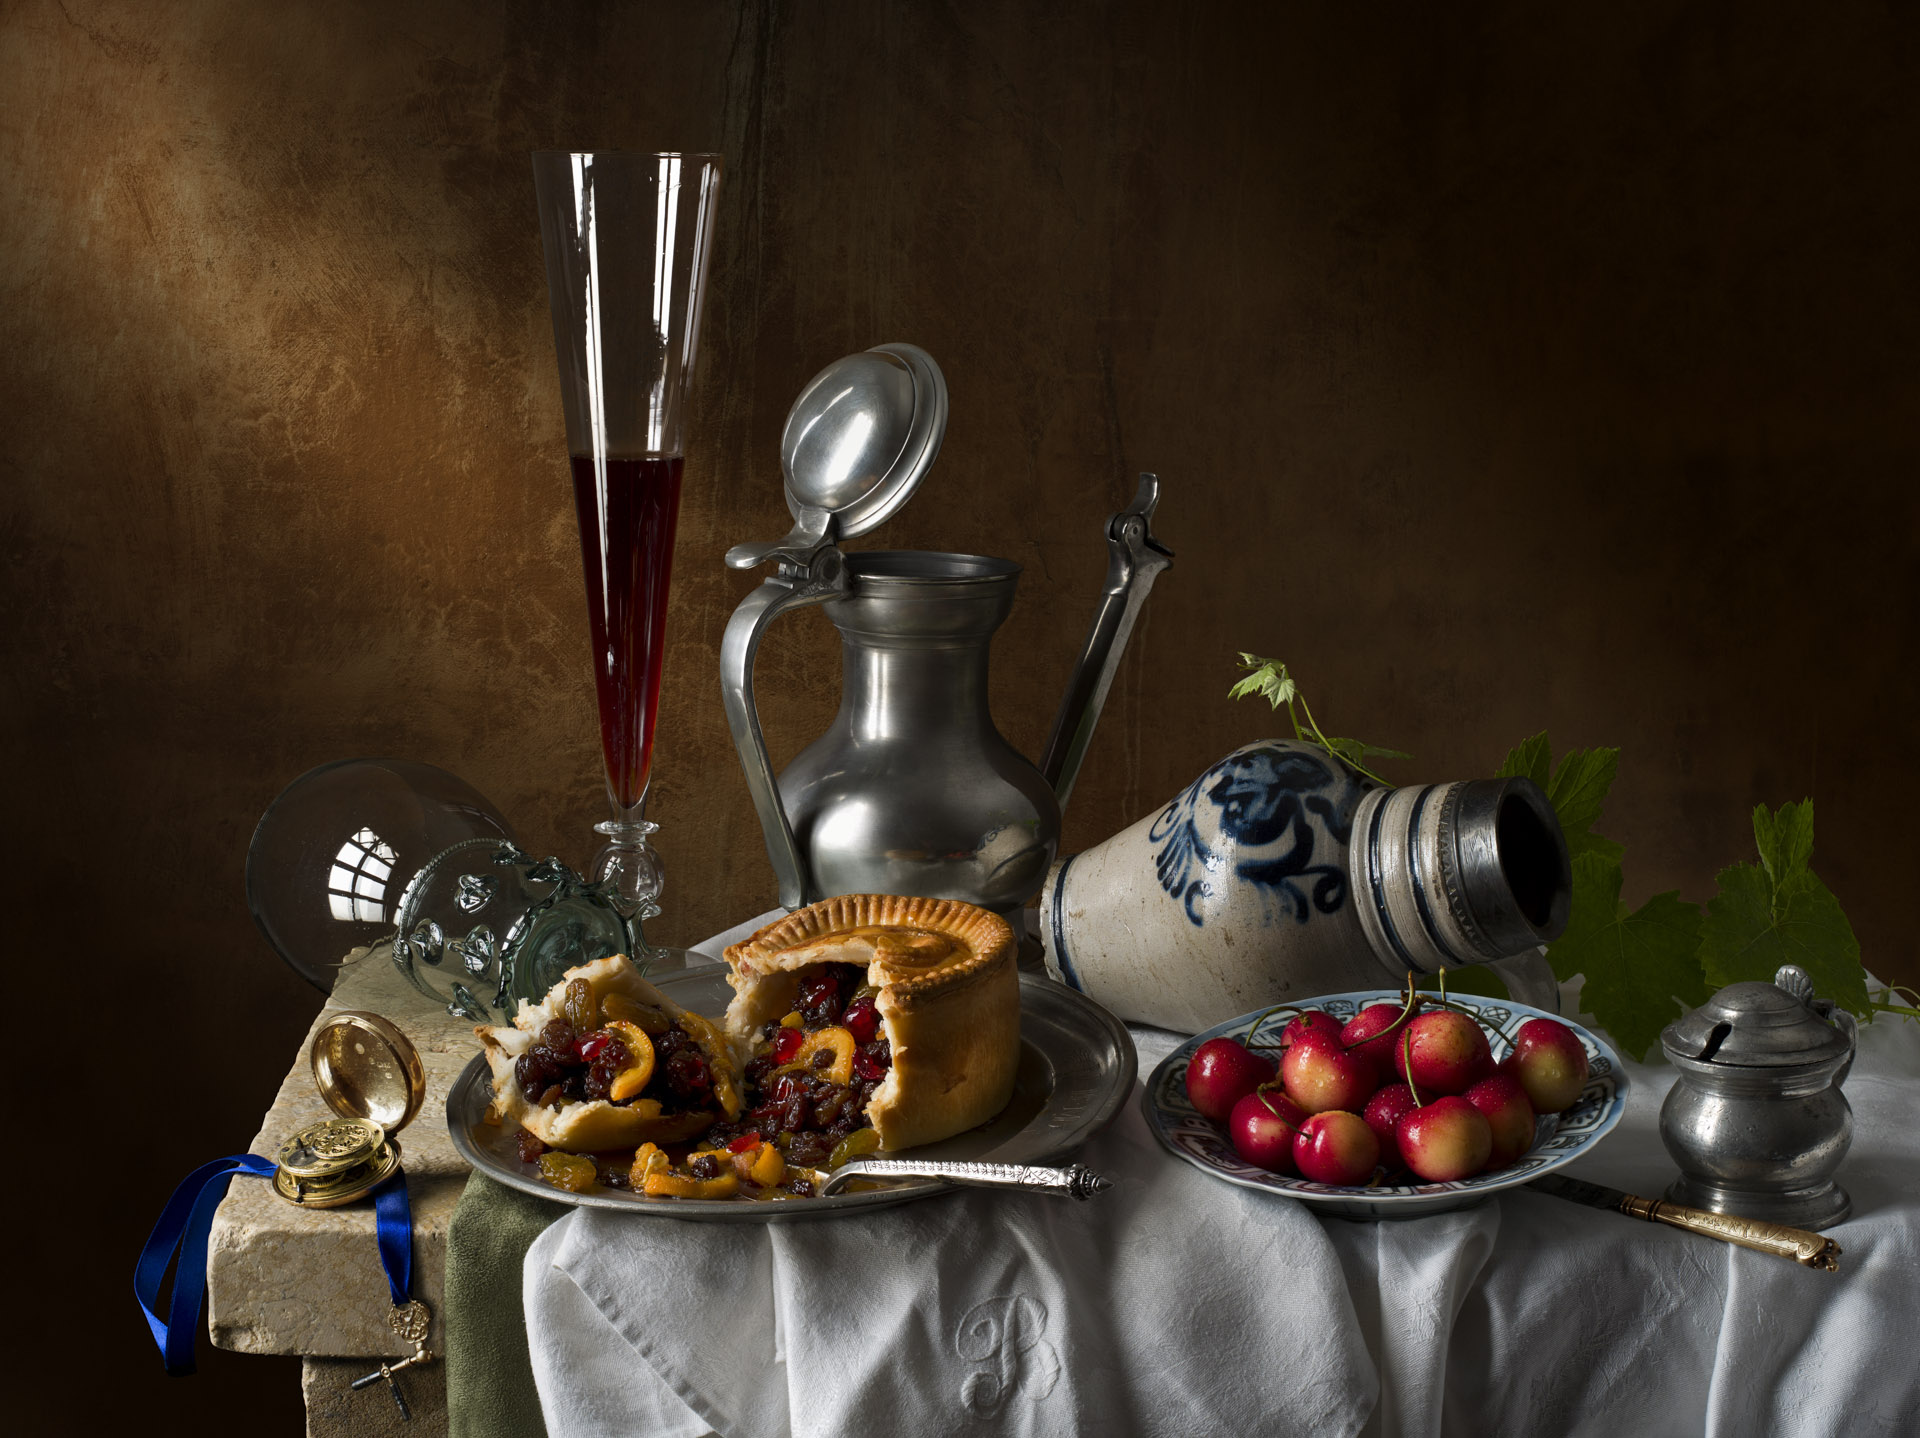 Still life with fruit pie and cherries